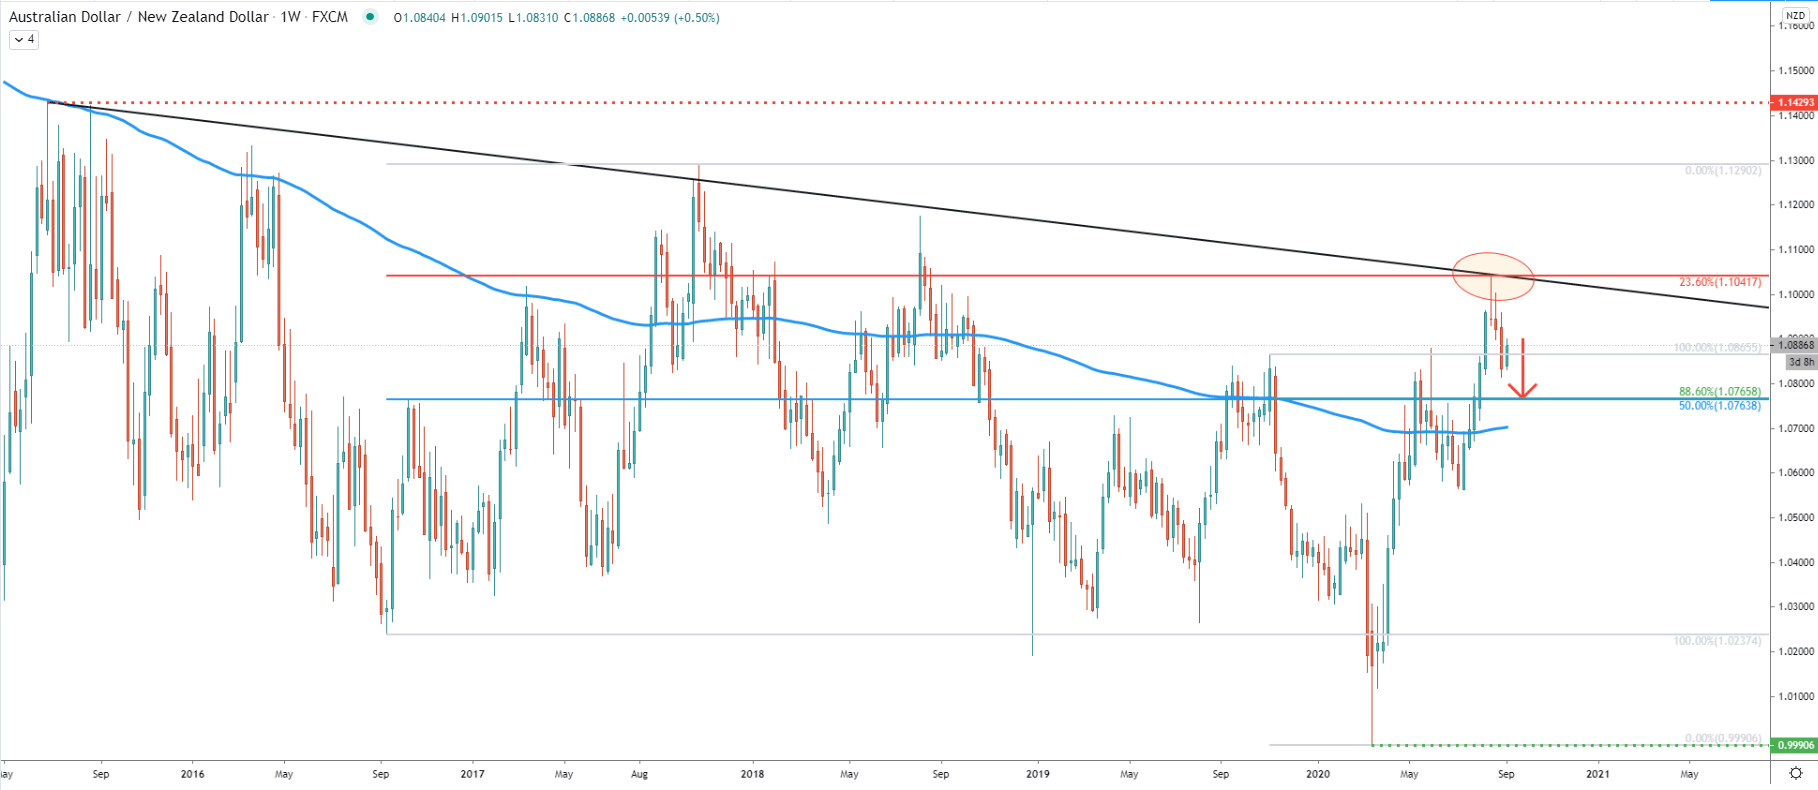 AUD/NZD Weekly Technical Analysis 8 Sep 2020